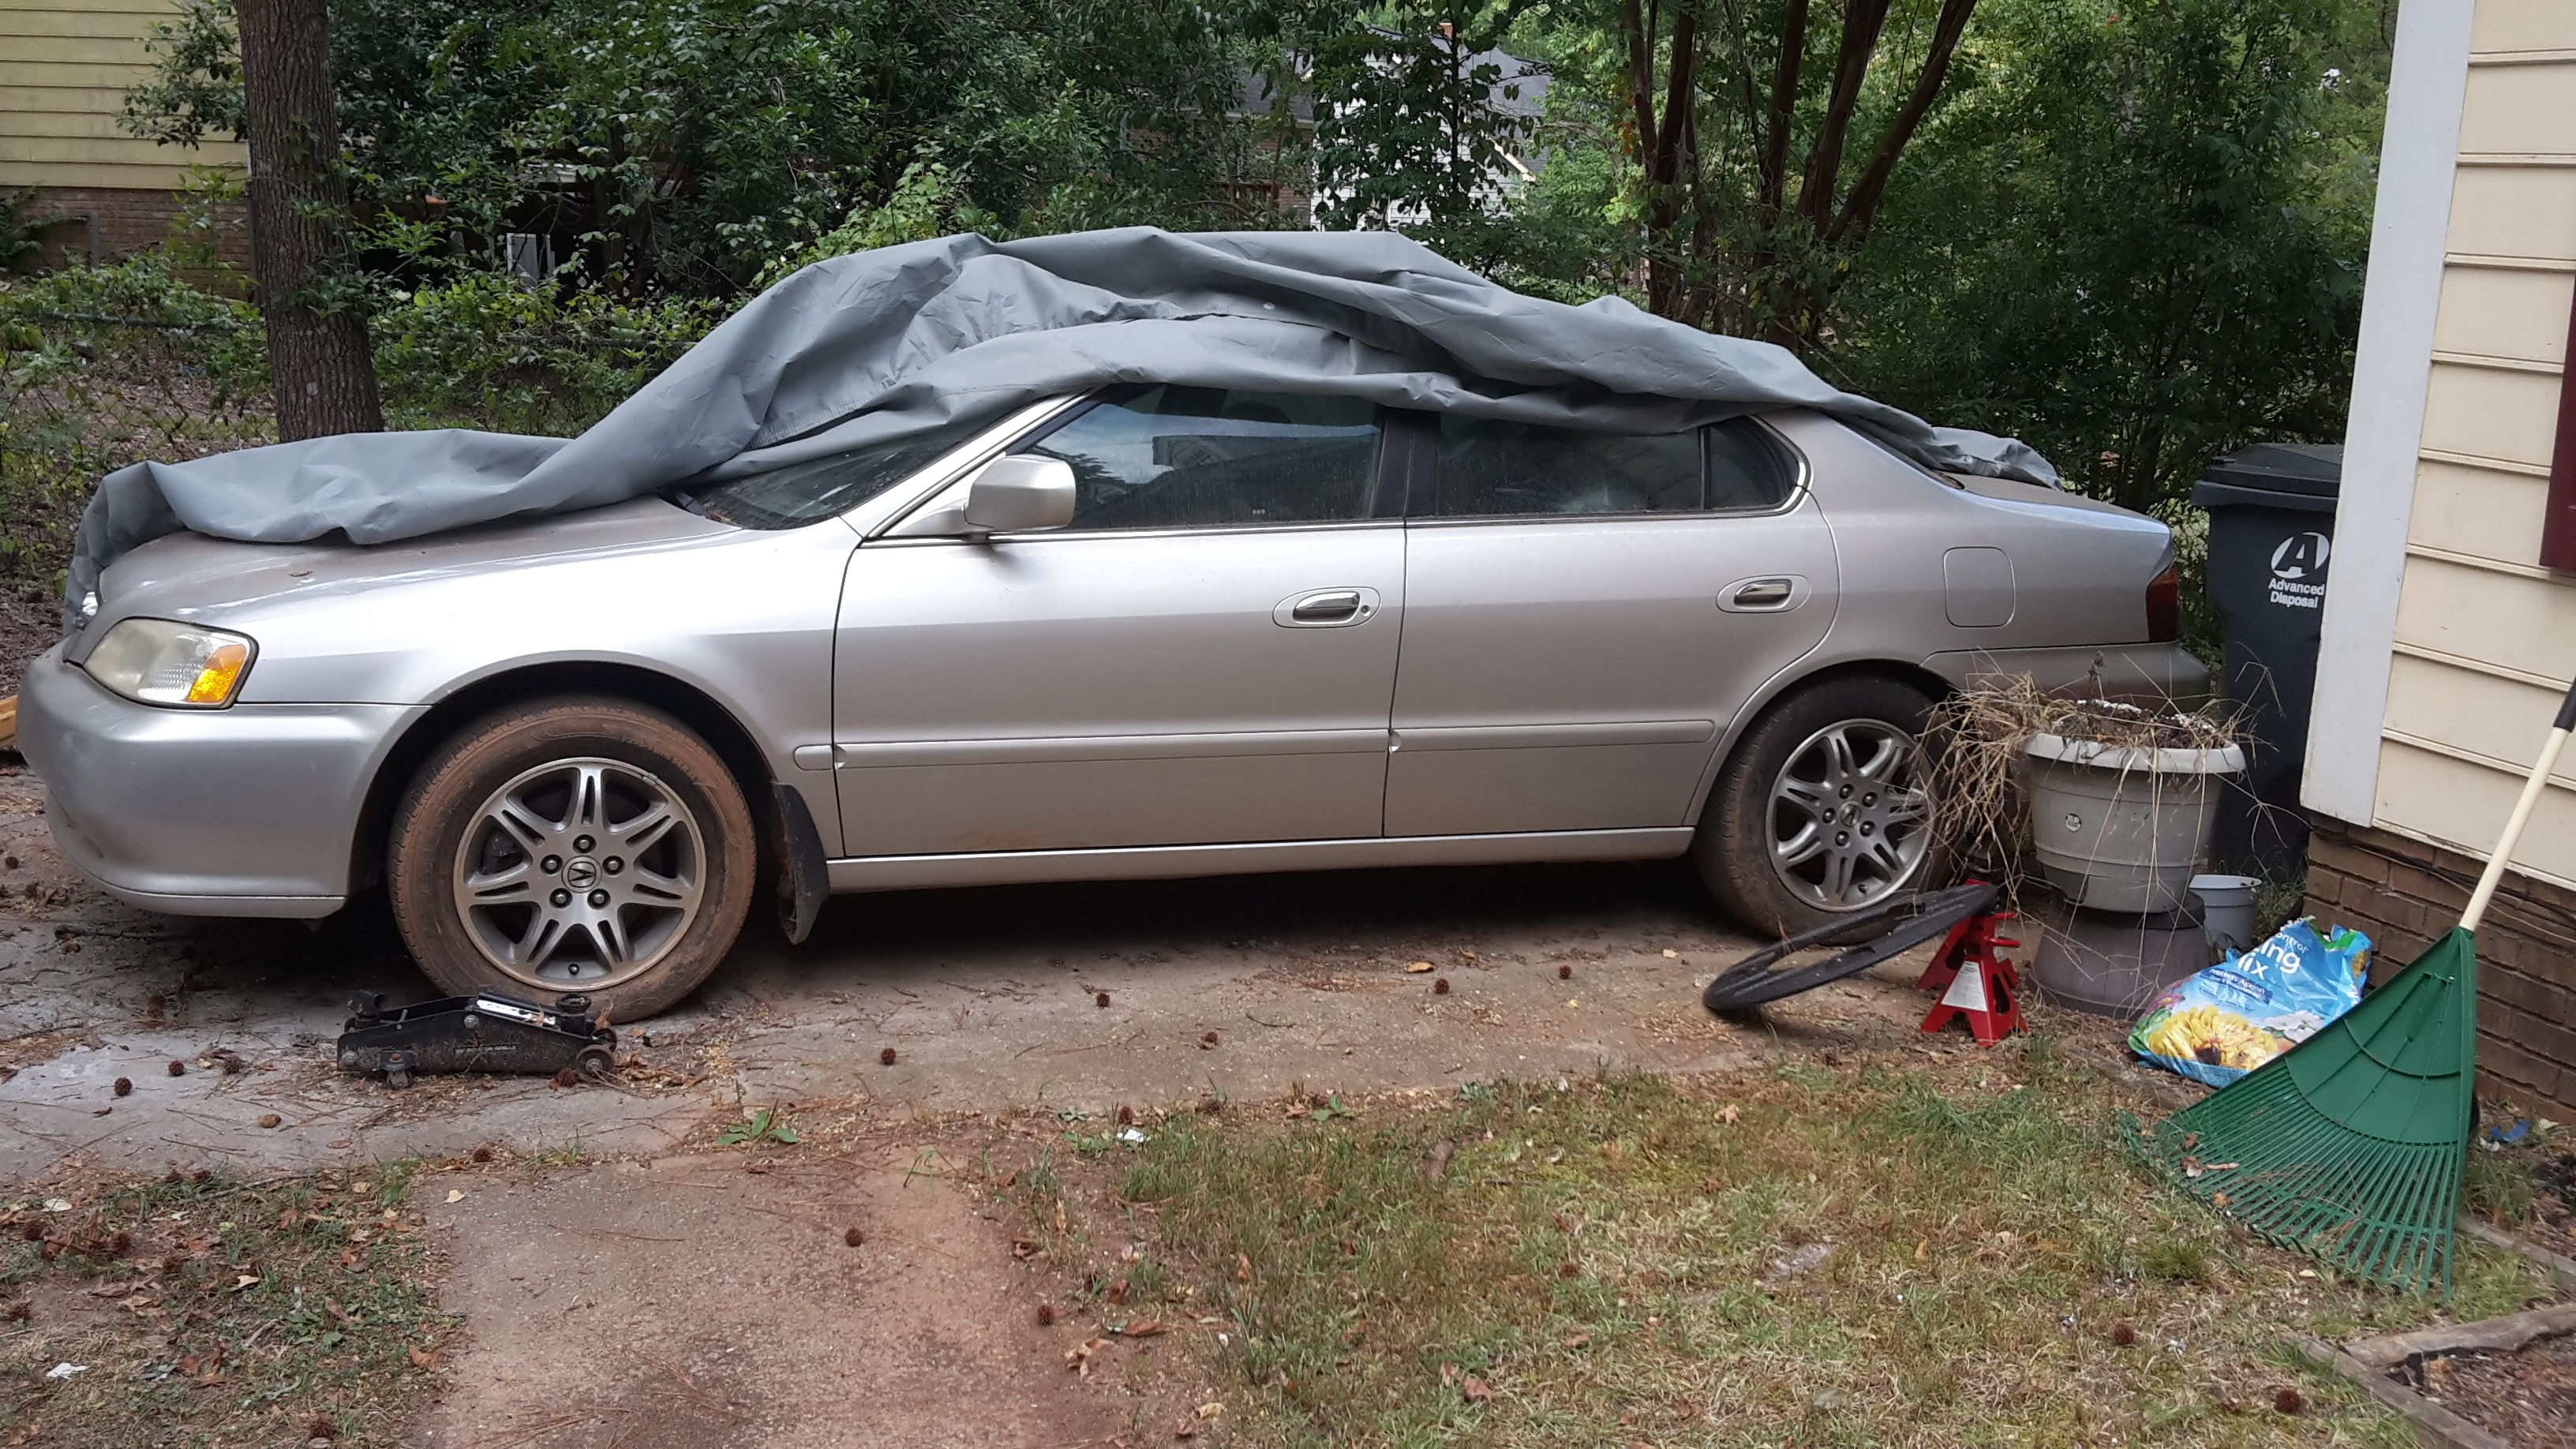 Cash For Cars Warrensburg Mo Sell Your Junk Car The